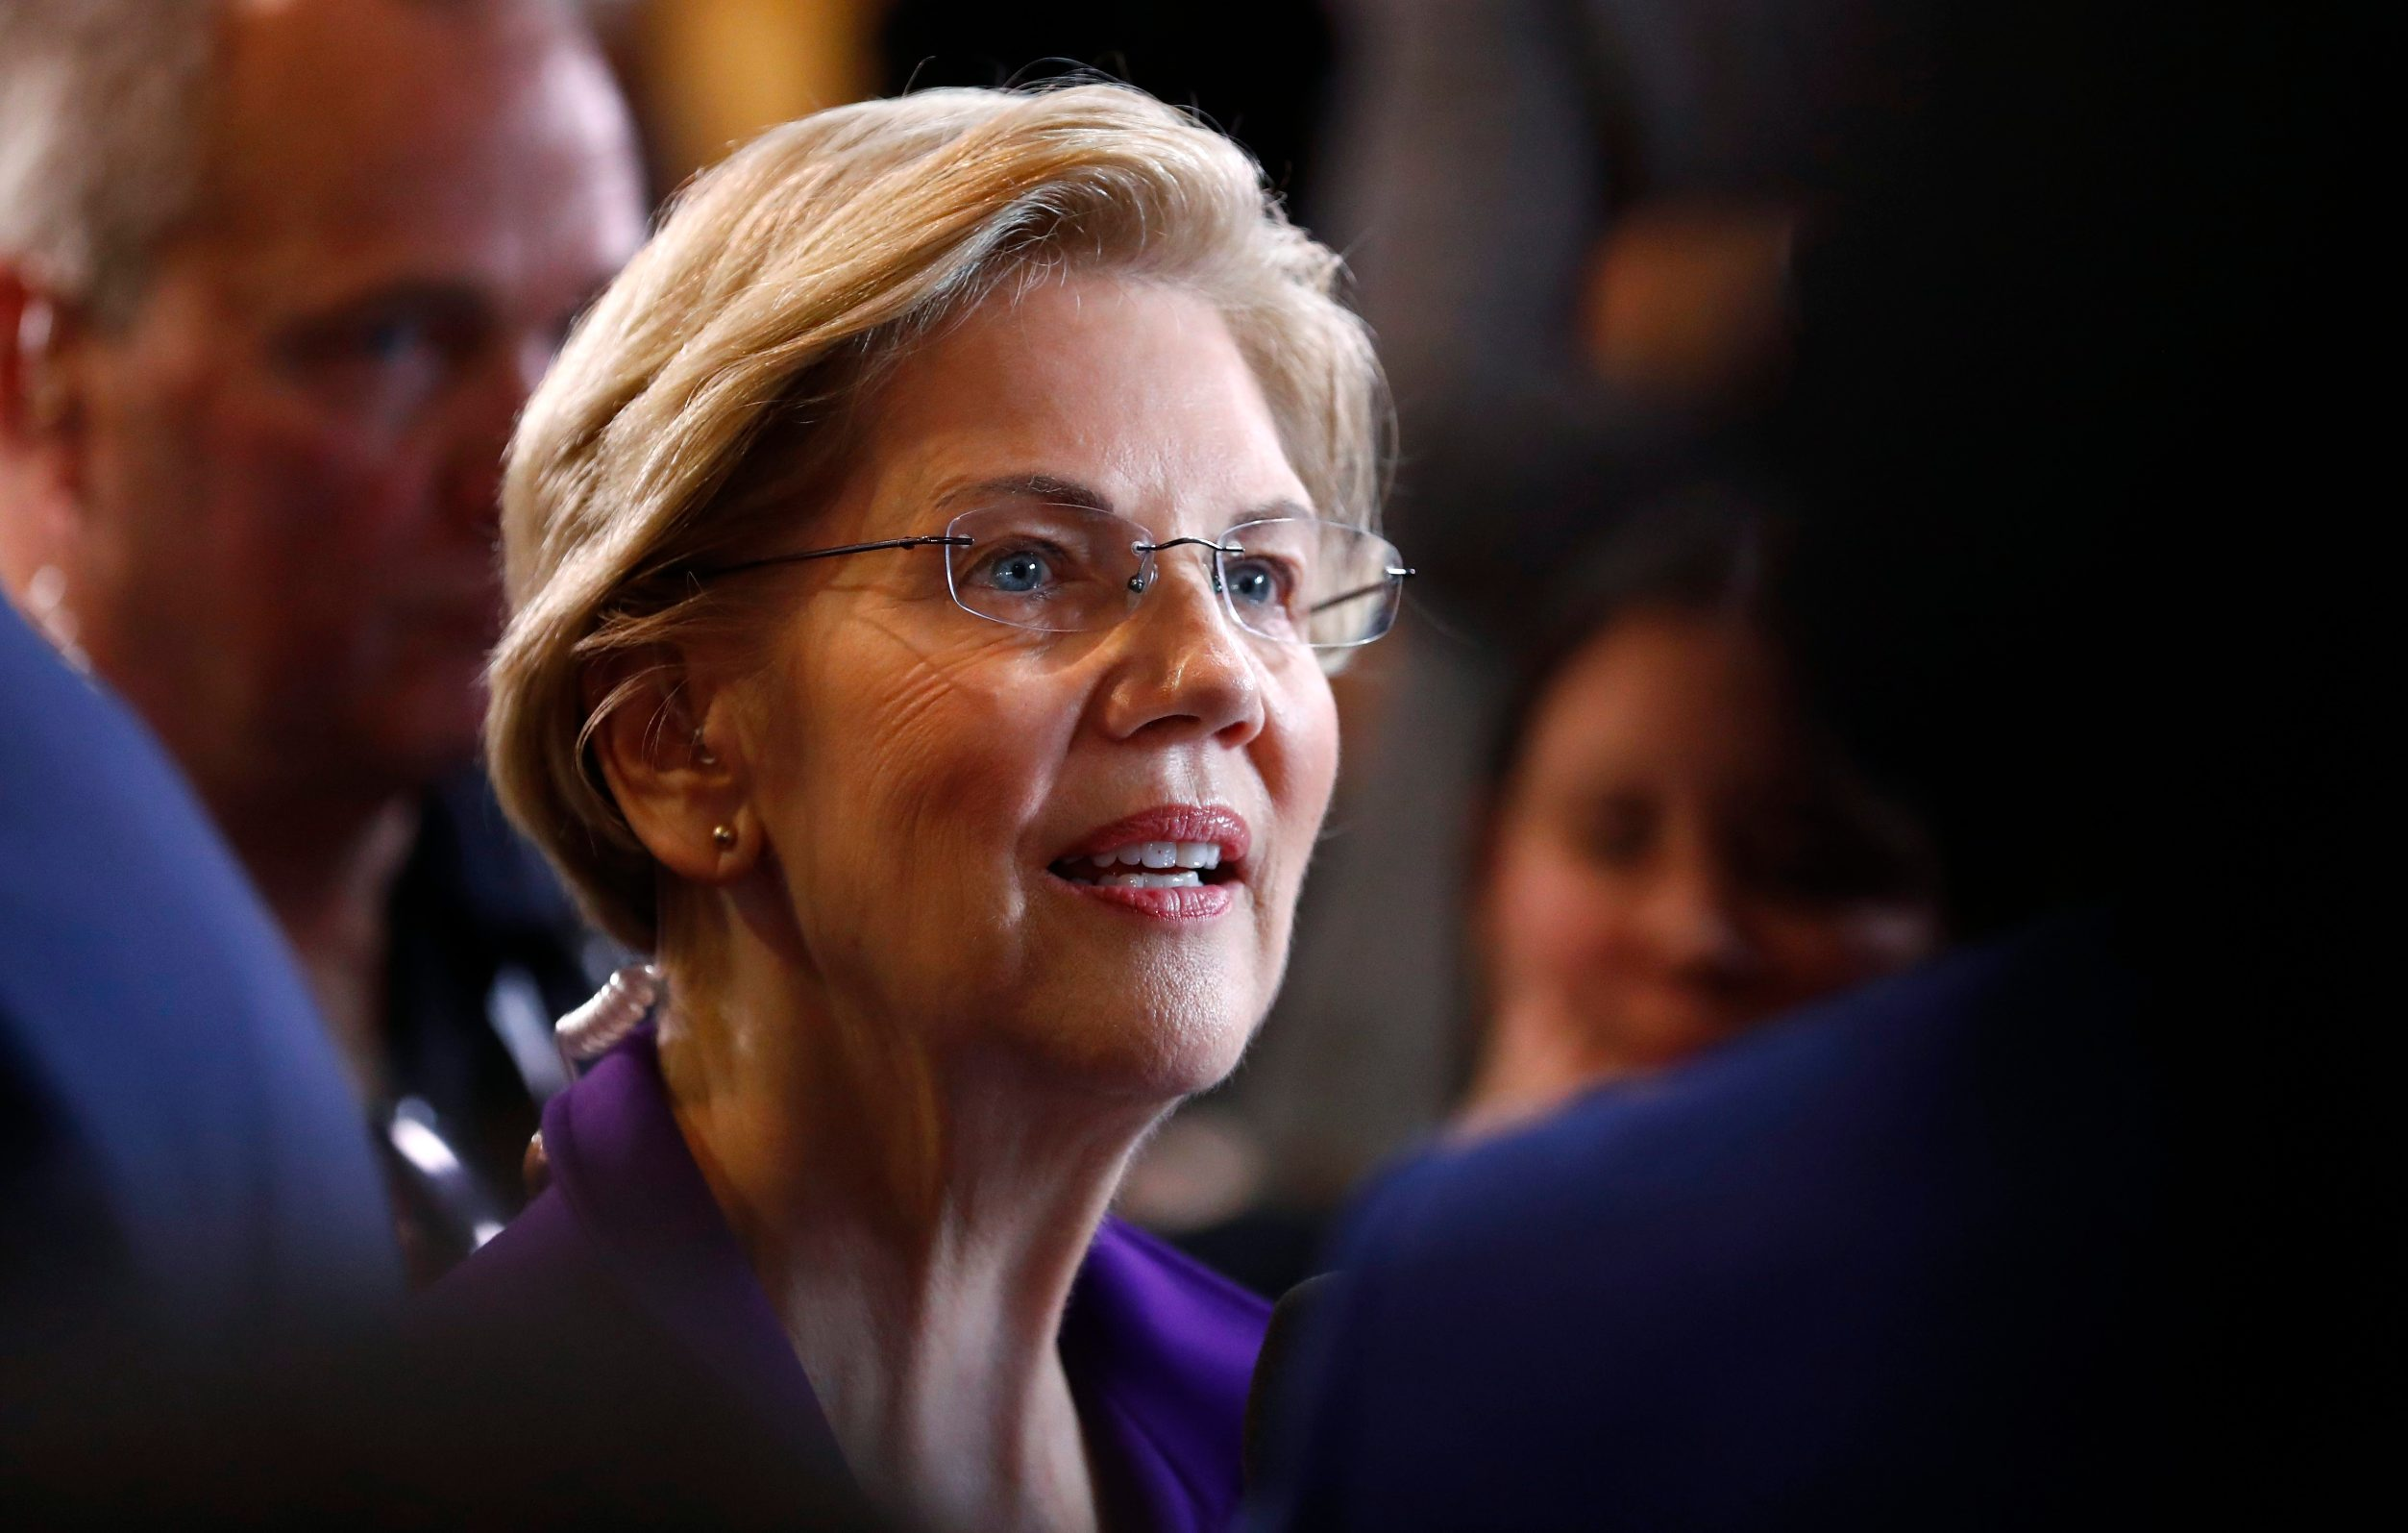 Senator Elizabeth Warren does an interview in the Spin Room after the fourth Democratic U.S. 2020 presidential election debate at Otterbein University  in Westerville, Ohio October 15, 2019. REUTERS/Aaron Josefczyk